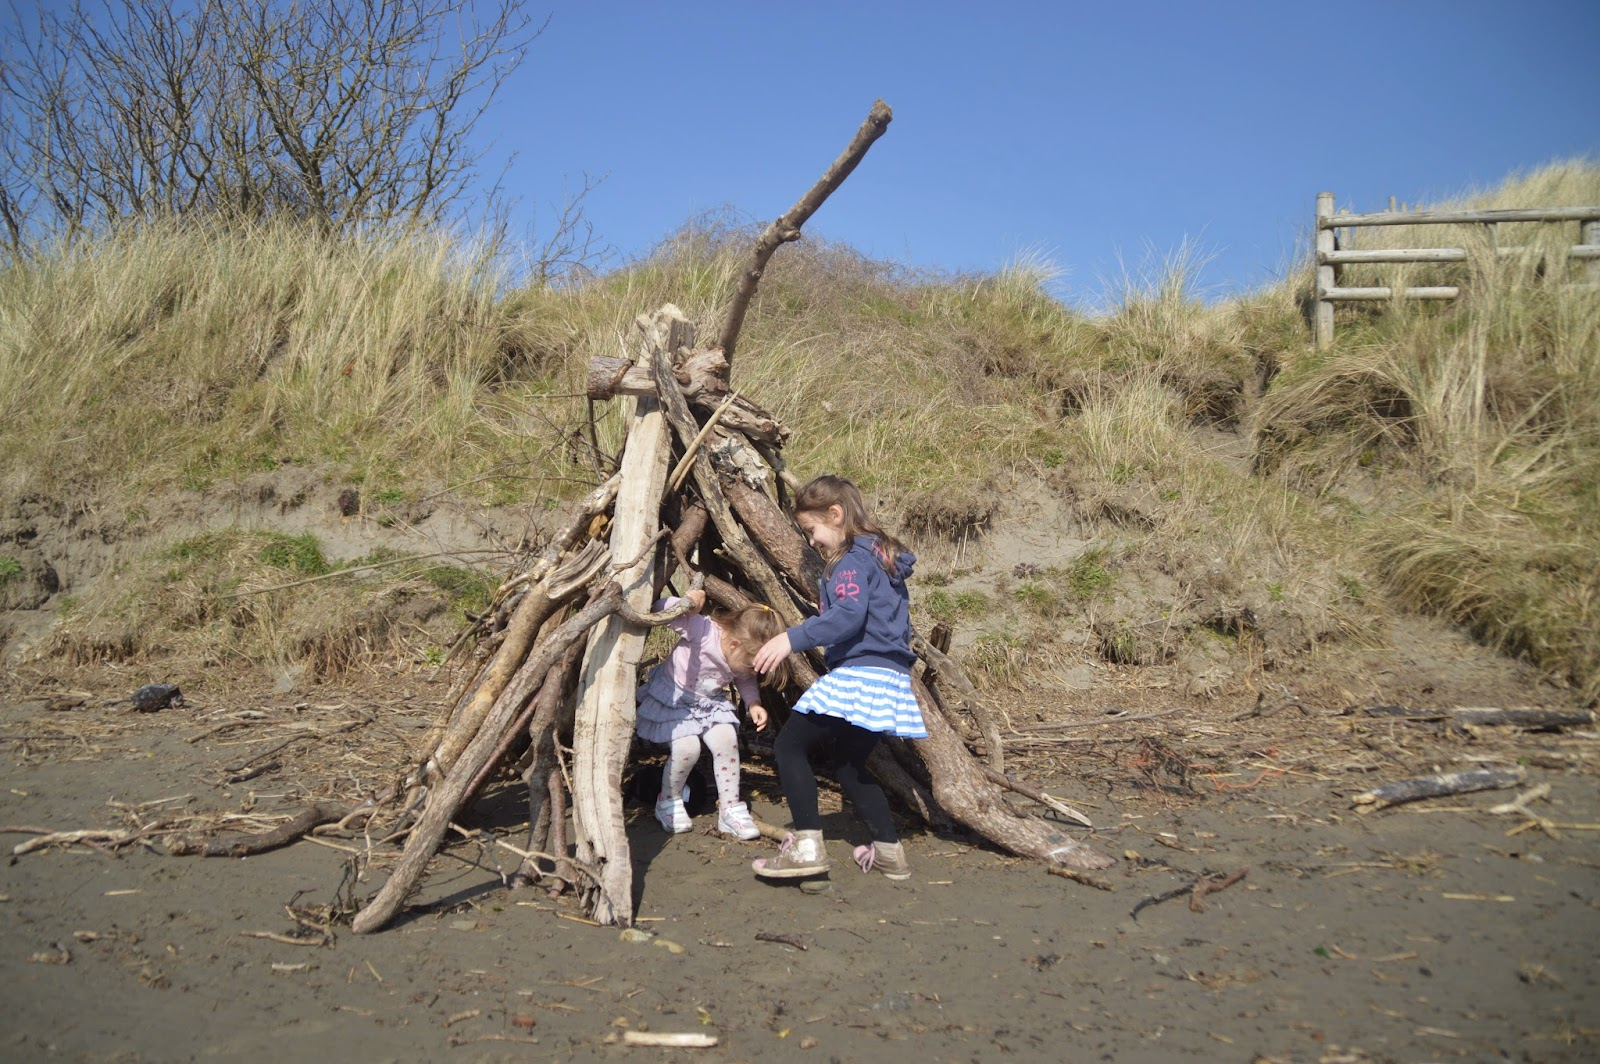 , Walking and Exploring Driftwood Dens at Newport Sands,  Pembrokeshire